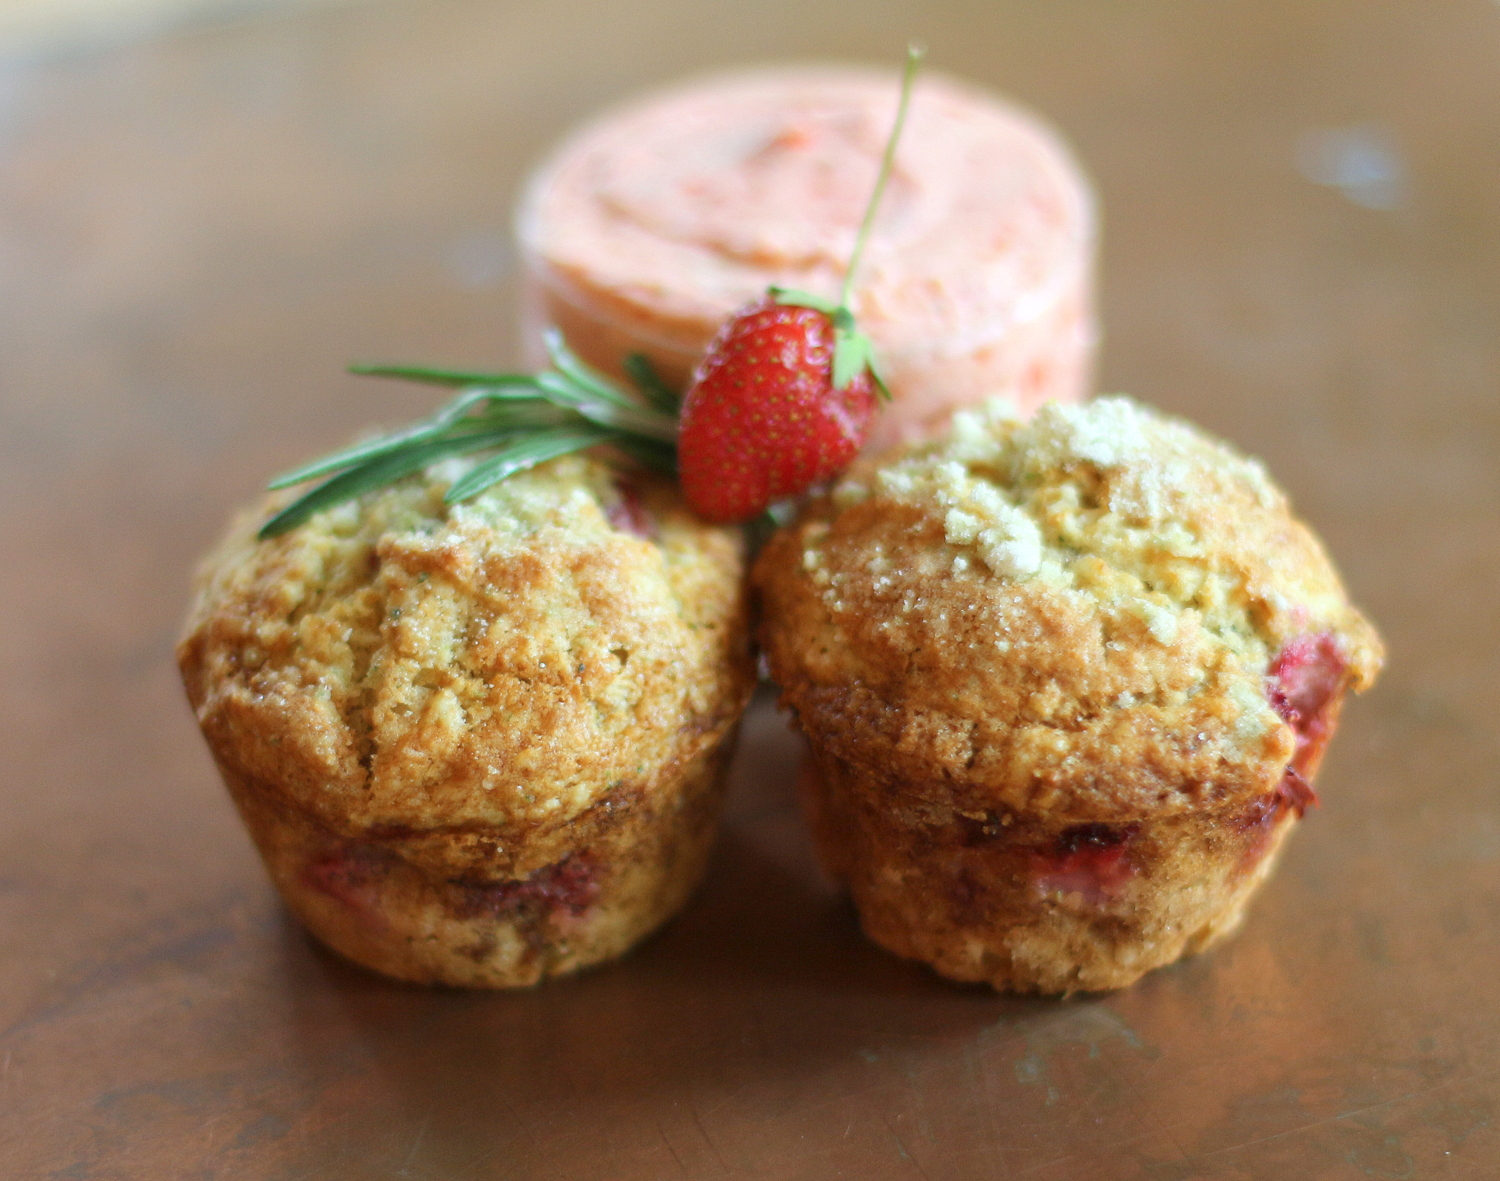 Strawberry Rosemary Muffins with Strawberry Rosemary Butter